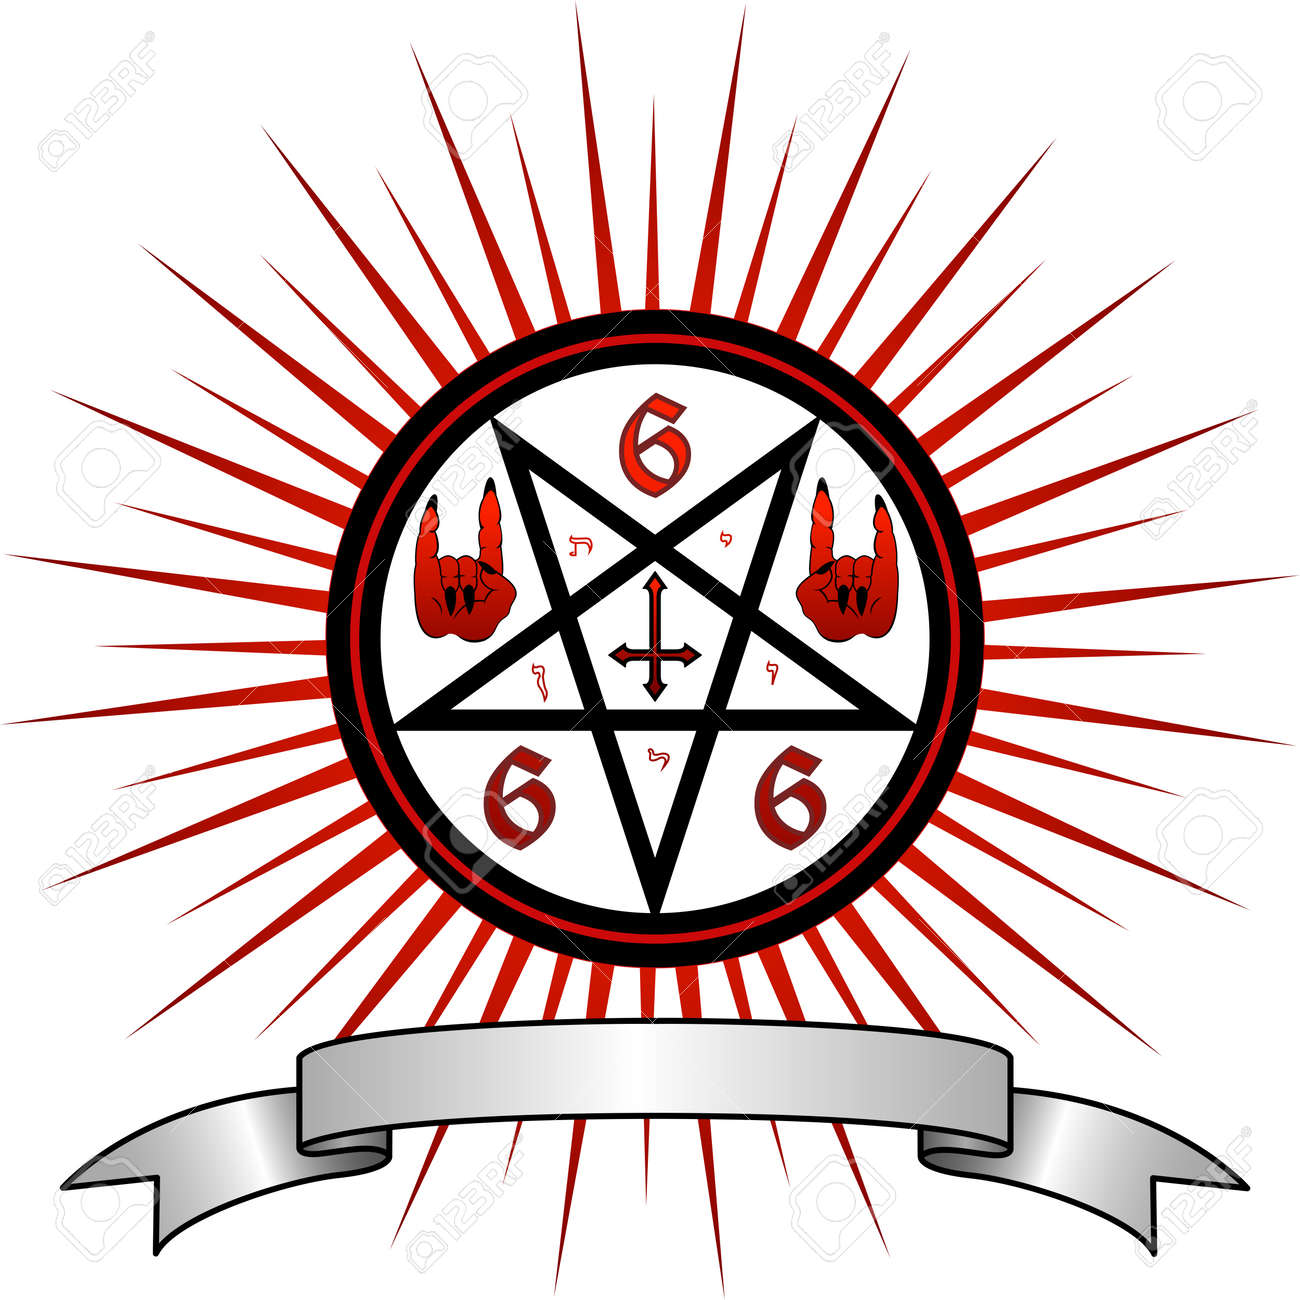 Pics of satanic symbols choice image symbol and sign ideas illustration full of magic and satanic symbols royalty free illustration full of magic and satanic symbols biocorpaavc